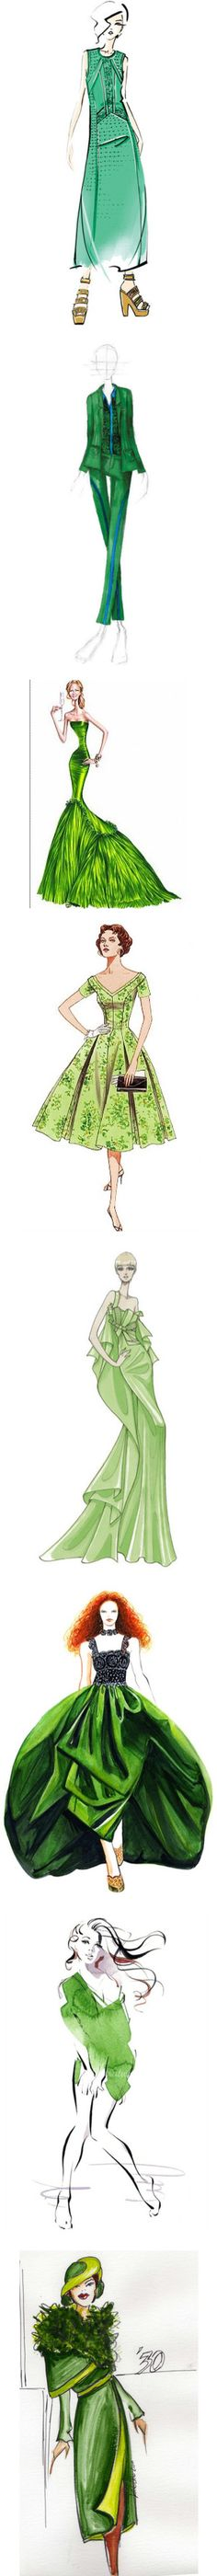 """""""Drawing in thones of green"""" by andrulitza ❤ liked on Polyvore"""